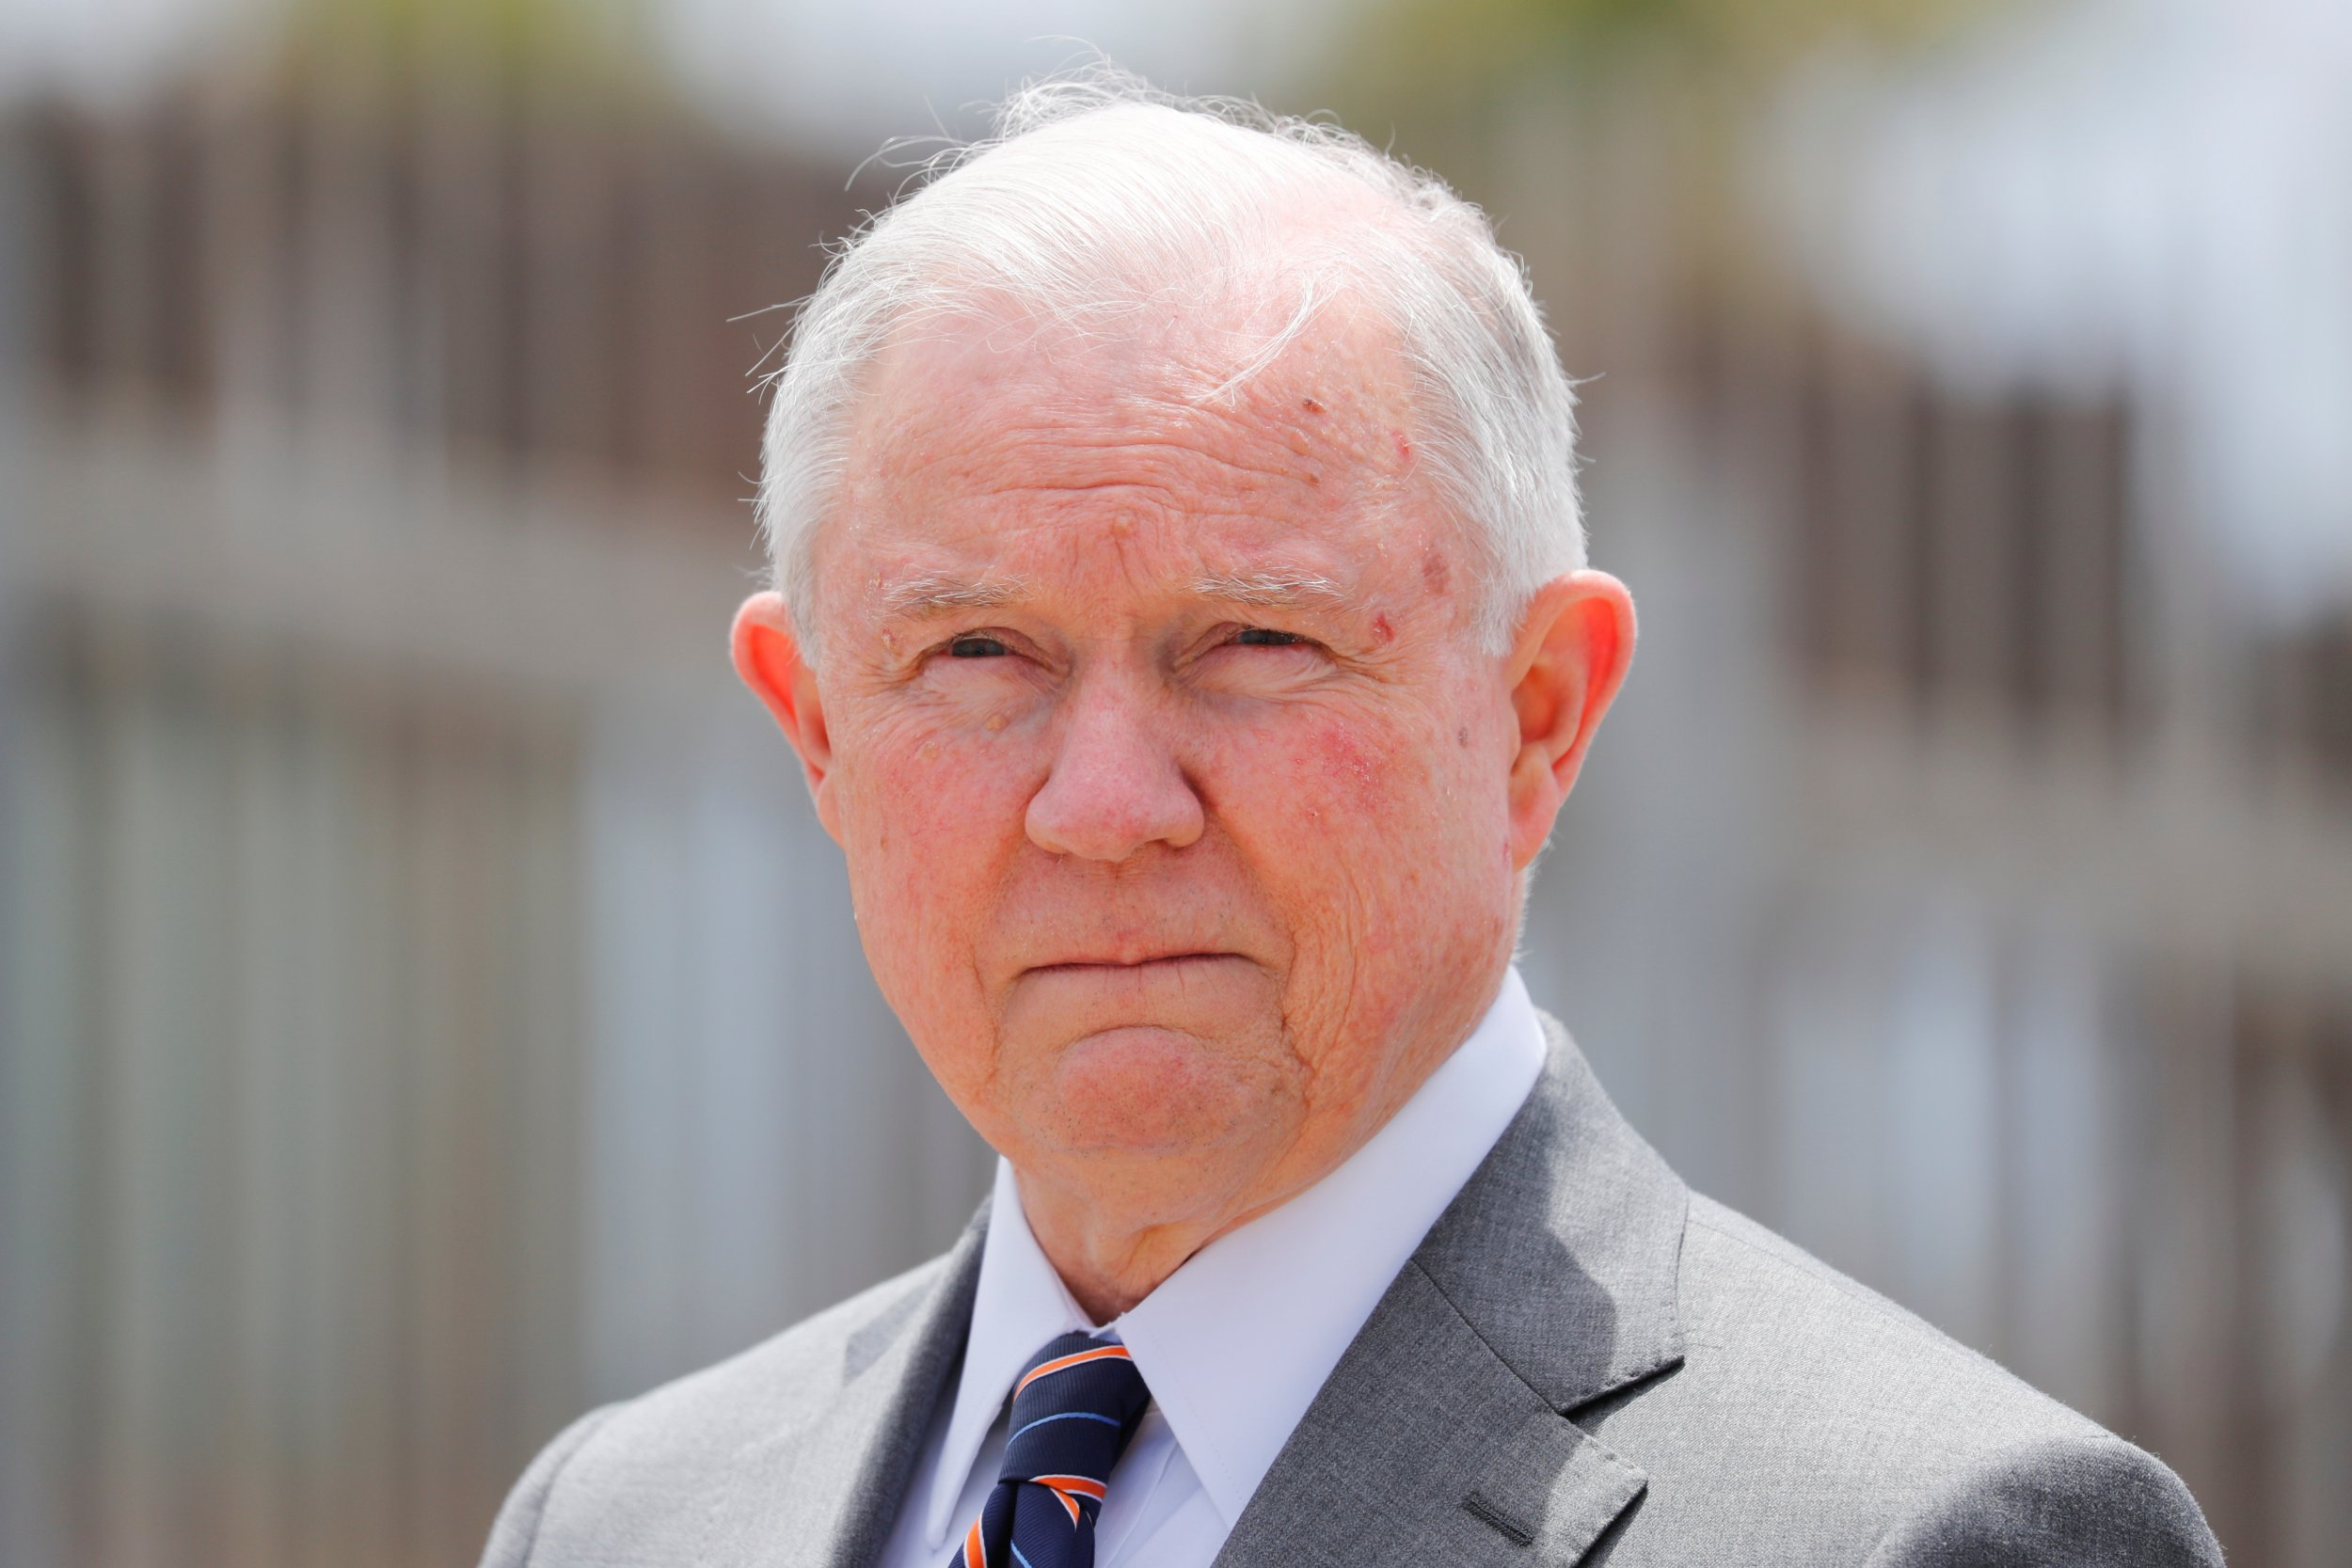 Jeff Sessions Charged With 'Child Abuse' by United Methodist Church After Implementing Child Separation Policy